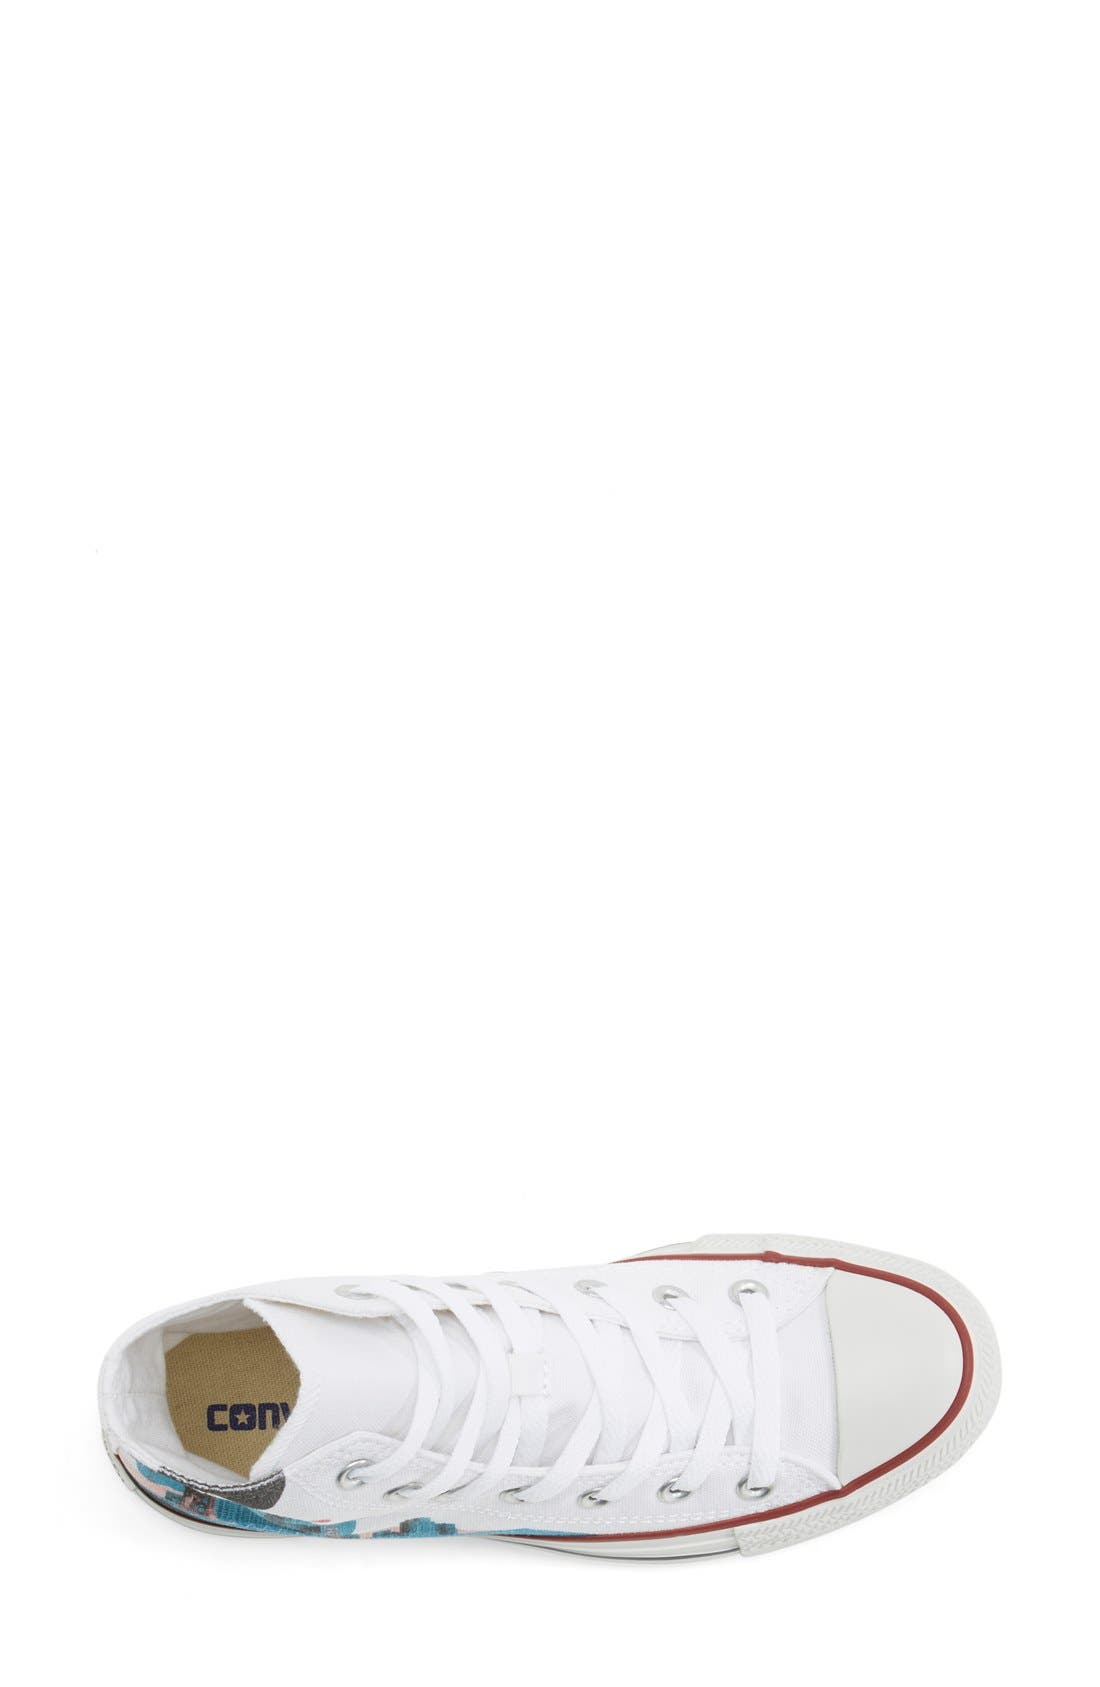 Chuck Taylor<sup>®</sup> All Star<sup>®</sup> 'Made By You - San Francisco' High Top Sneaker,                             Alternate thumbnail 2, color,                             102